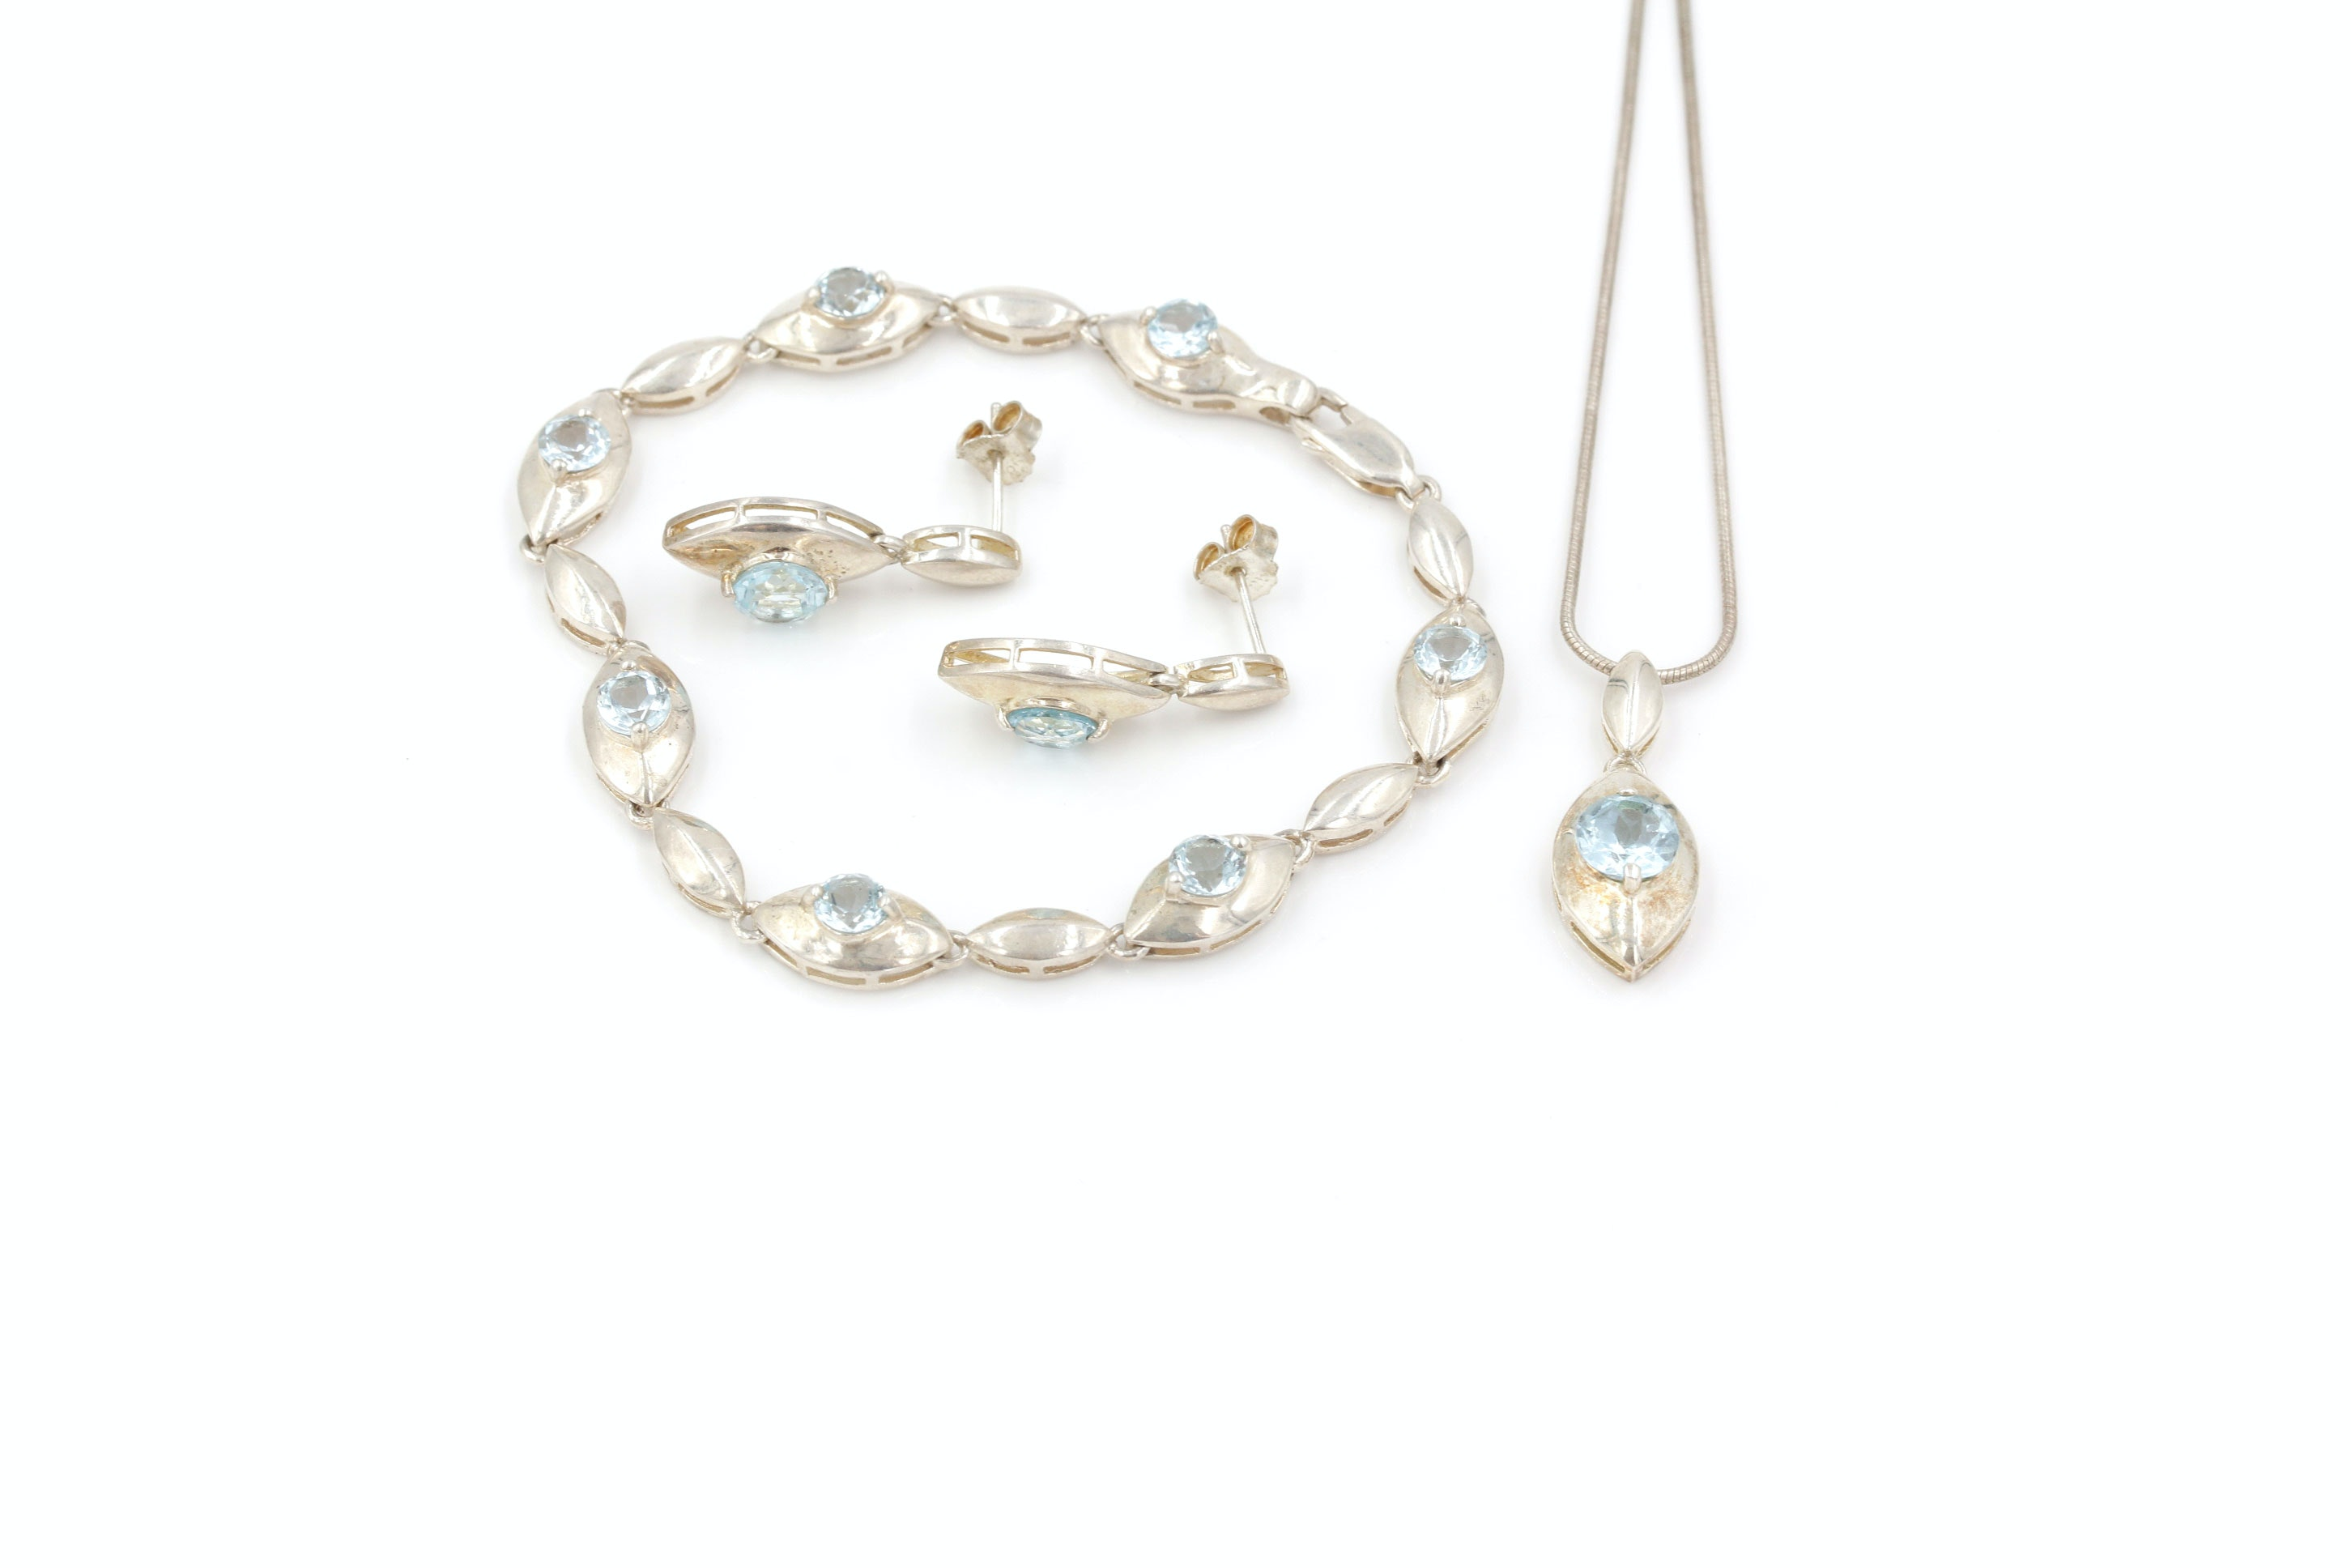 Sterling Silver and Blue Topaz Necklace, Bracelet and Earrings Set